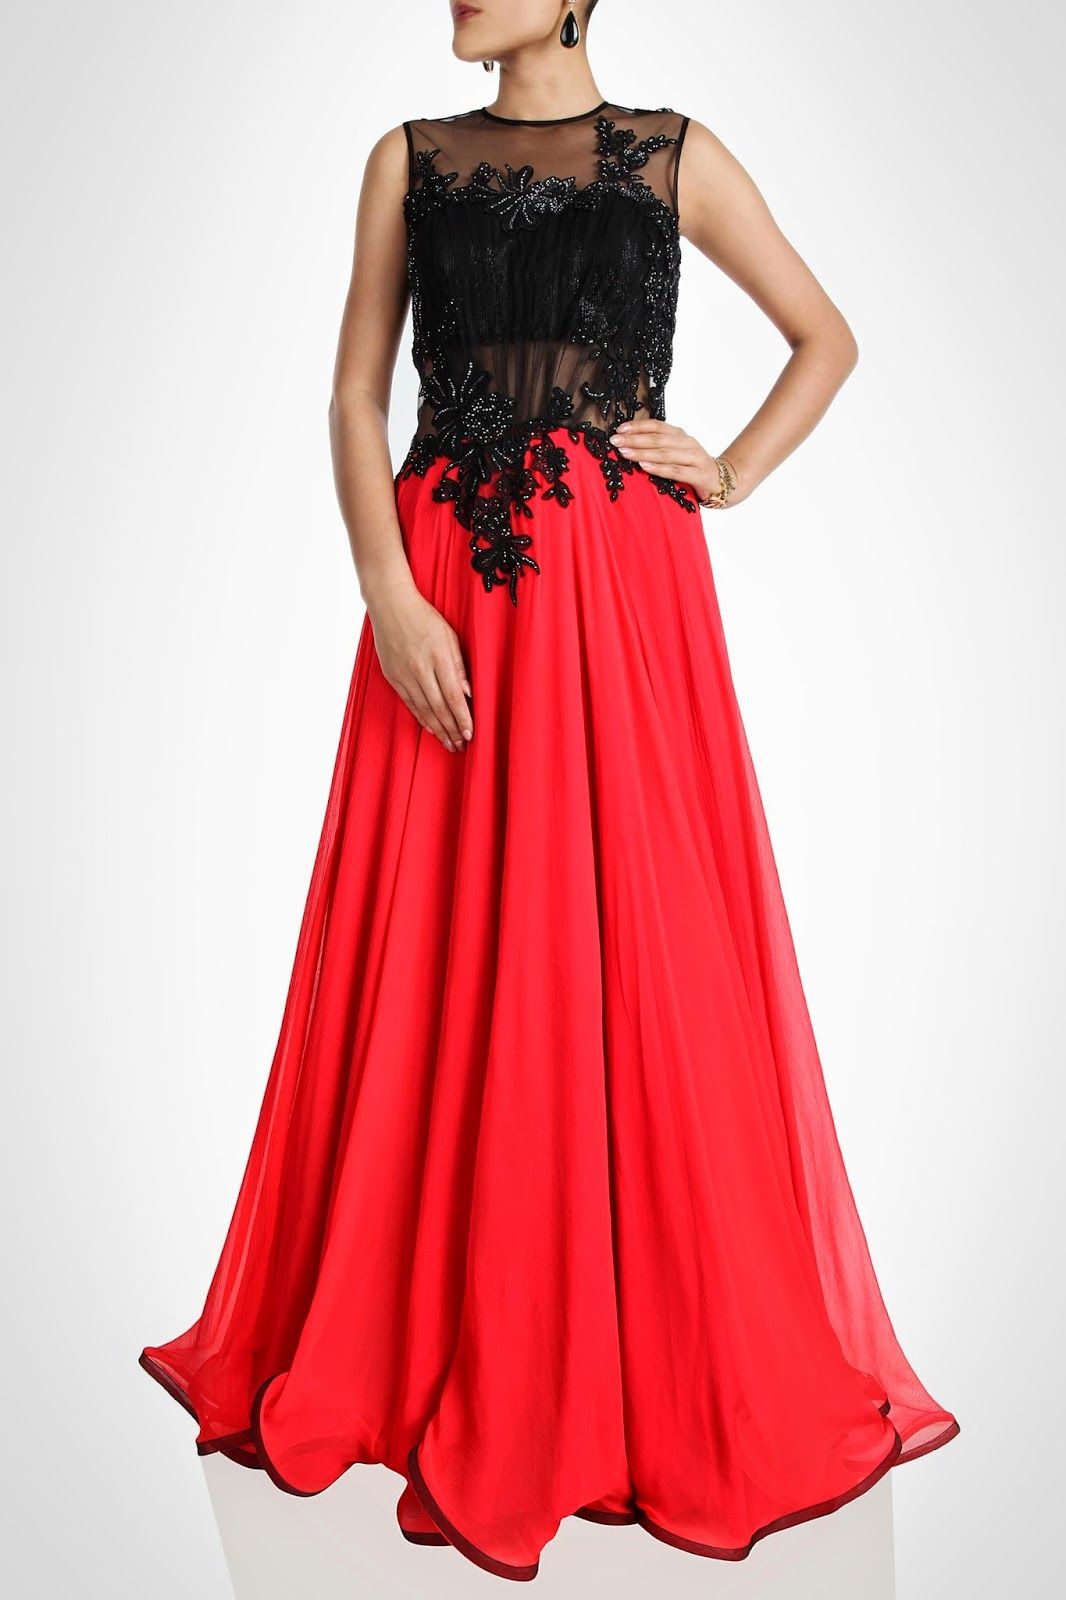 e999c33c36 perniaspopupshop red n black gown - Google Search